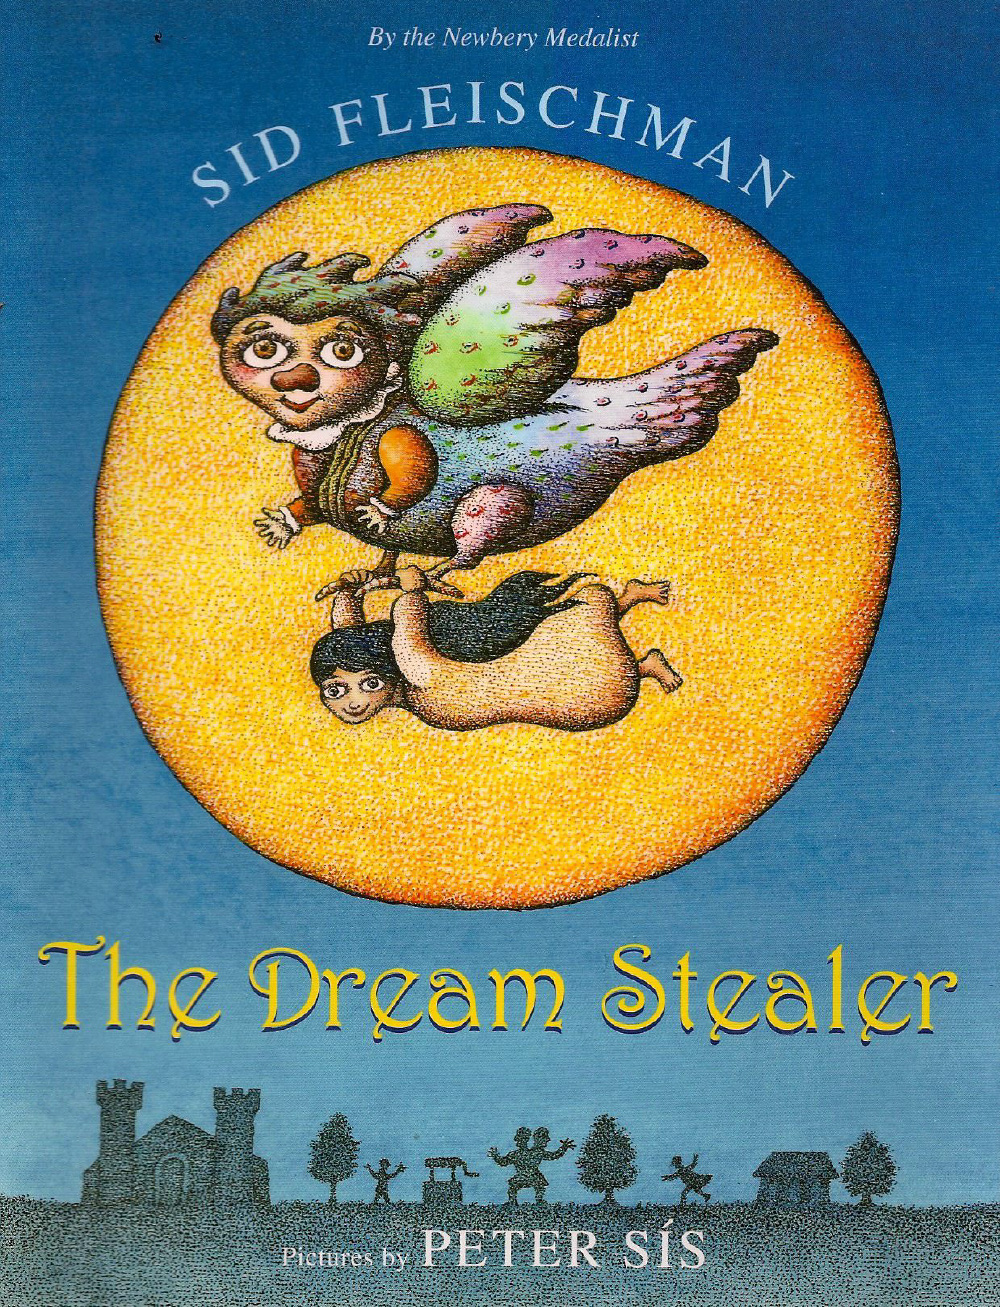 The Dream Stealer - Illustrated by Peter Sis